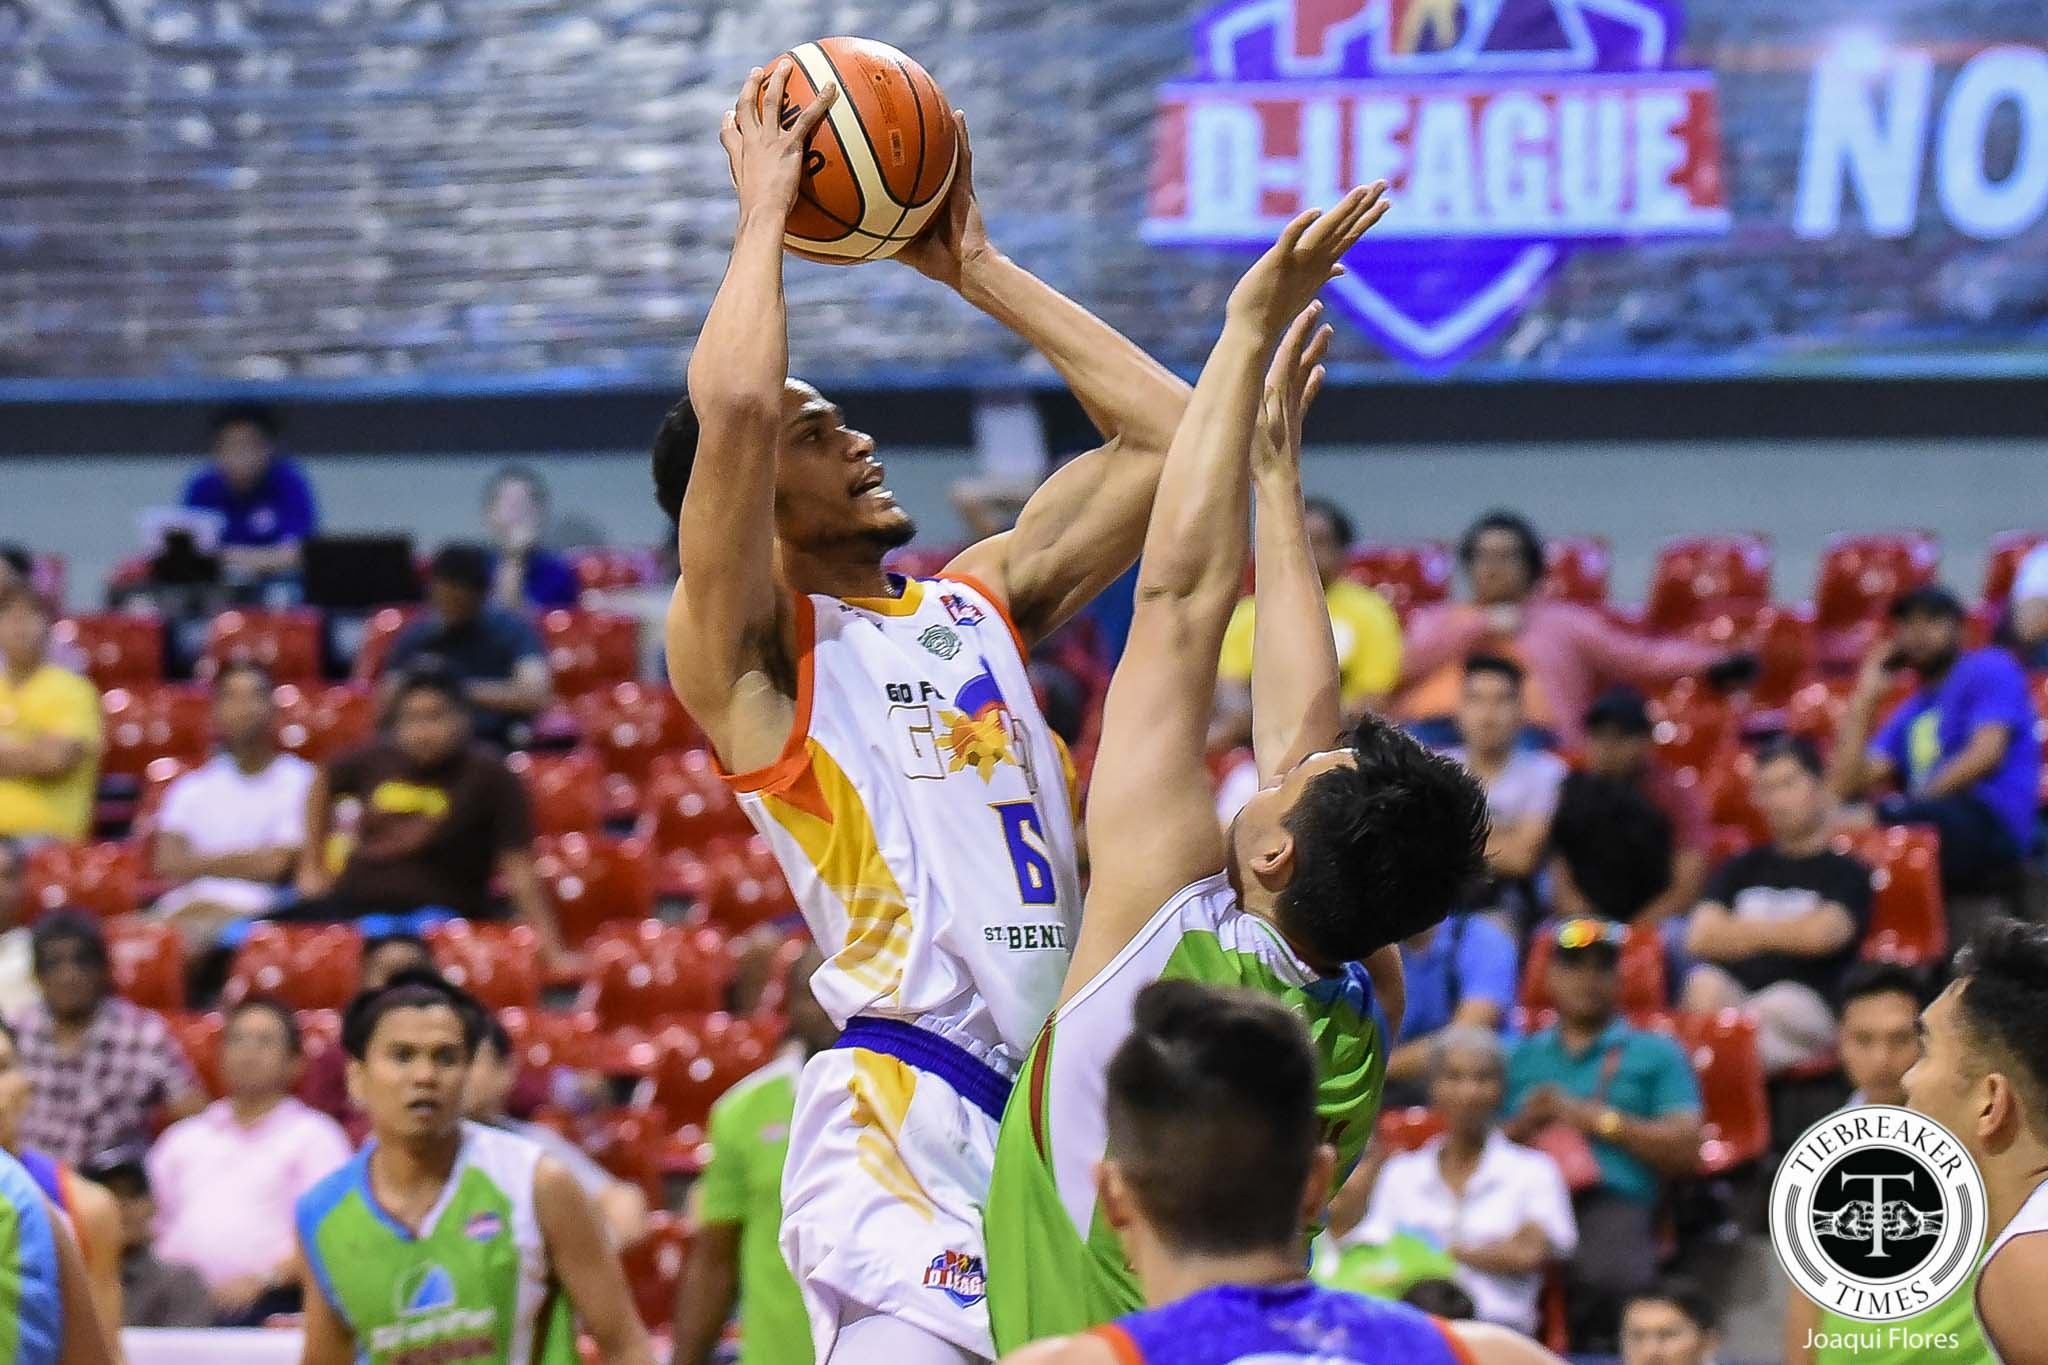 Tiebreaker Times Roosevelt Adams starting to find groove with Go for Gold-CSB Basketball News PBA D-League  Roosevelt Adams Go for Gold-CSB 2019 PBA D-League Season